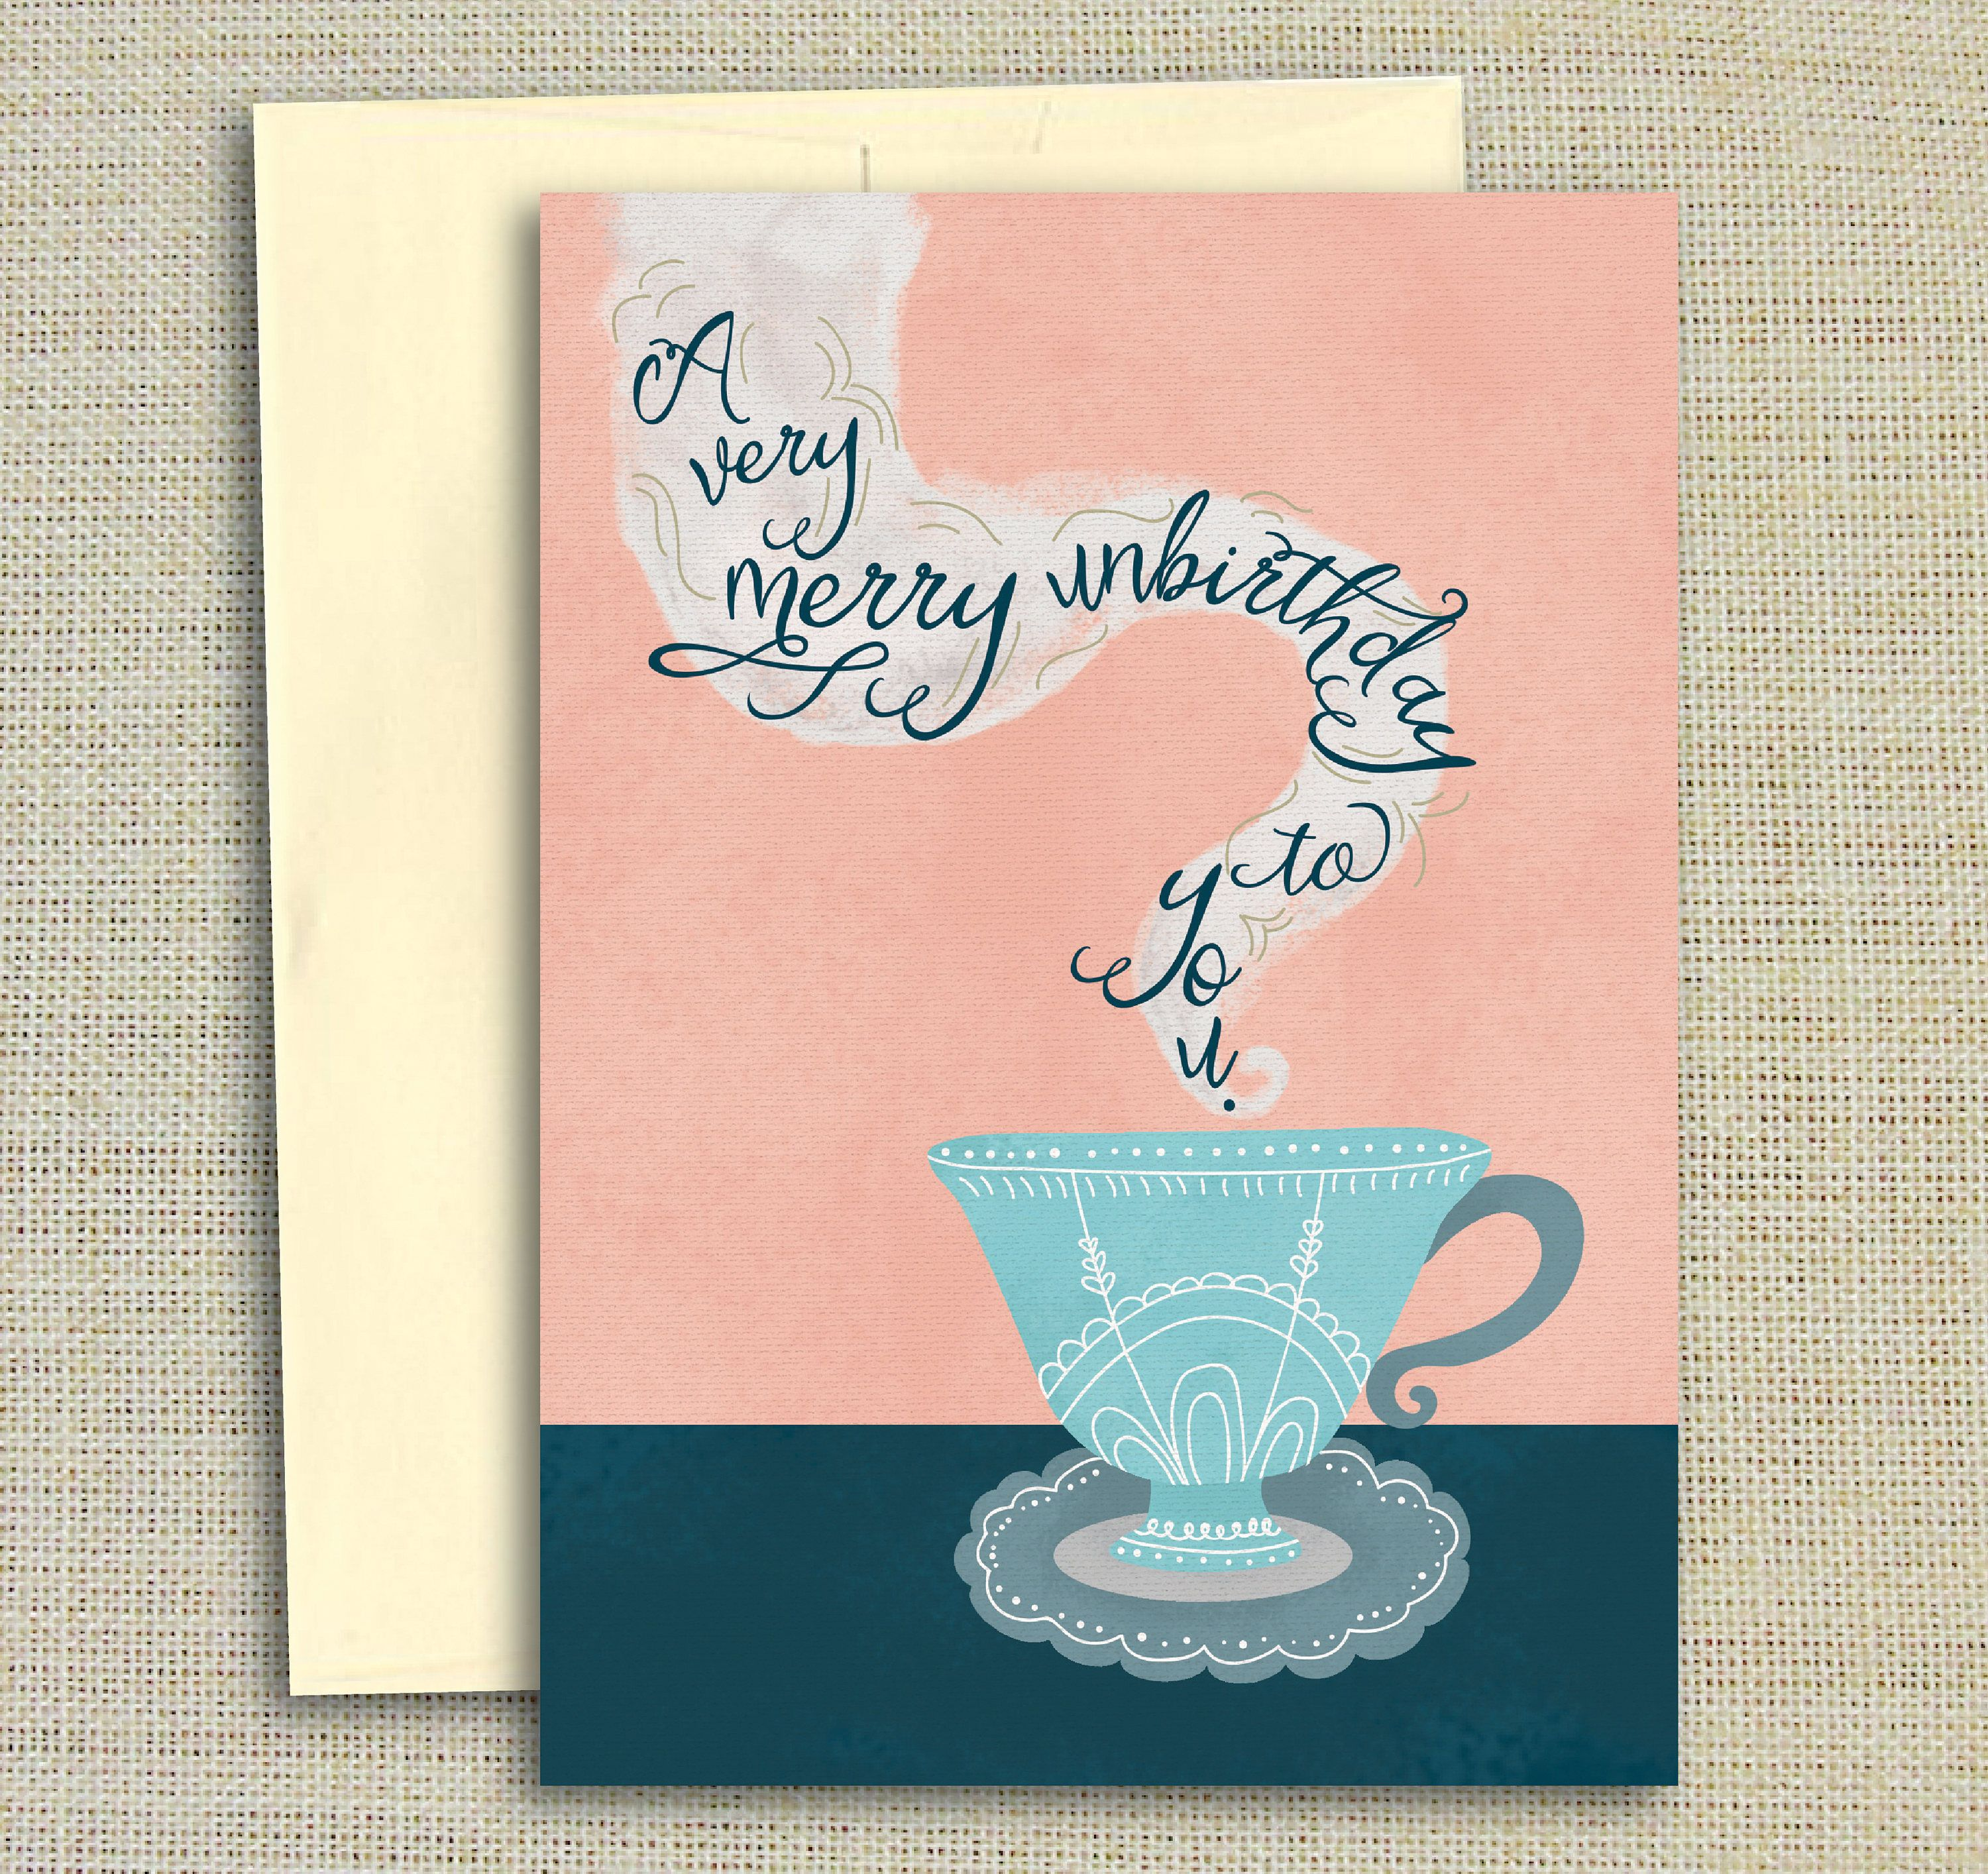 A Very Merry Unbirthday To You Alice In Wonderland Birthday Card Tea Card Mad Hatter Card Birthda Alice In Wonderland Birthday Party Card Birthday Cards